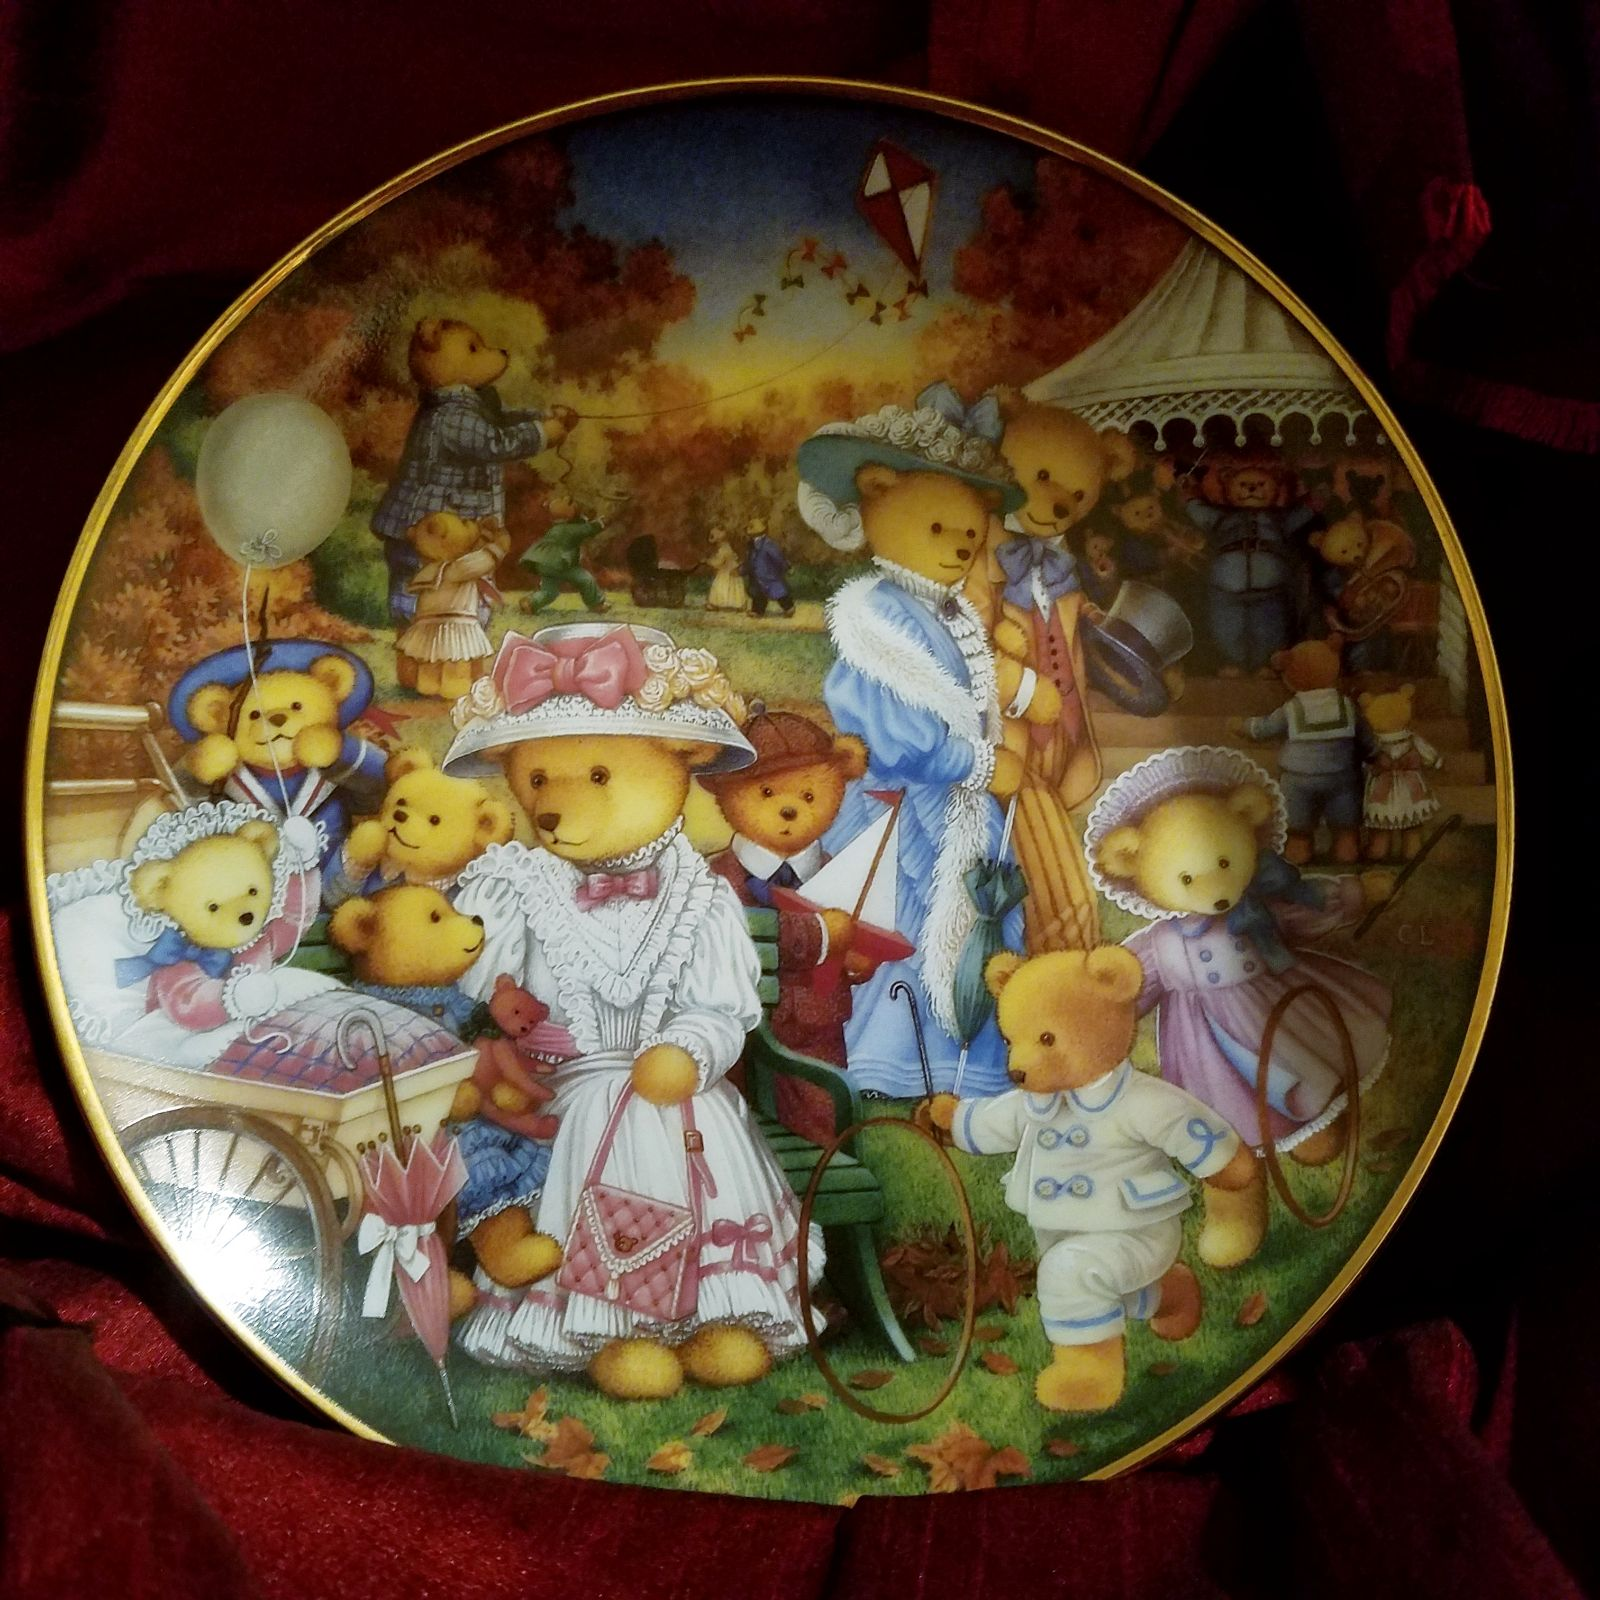 Franklin Mint plate, Teddy bear outing